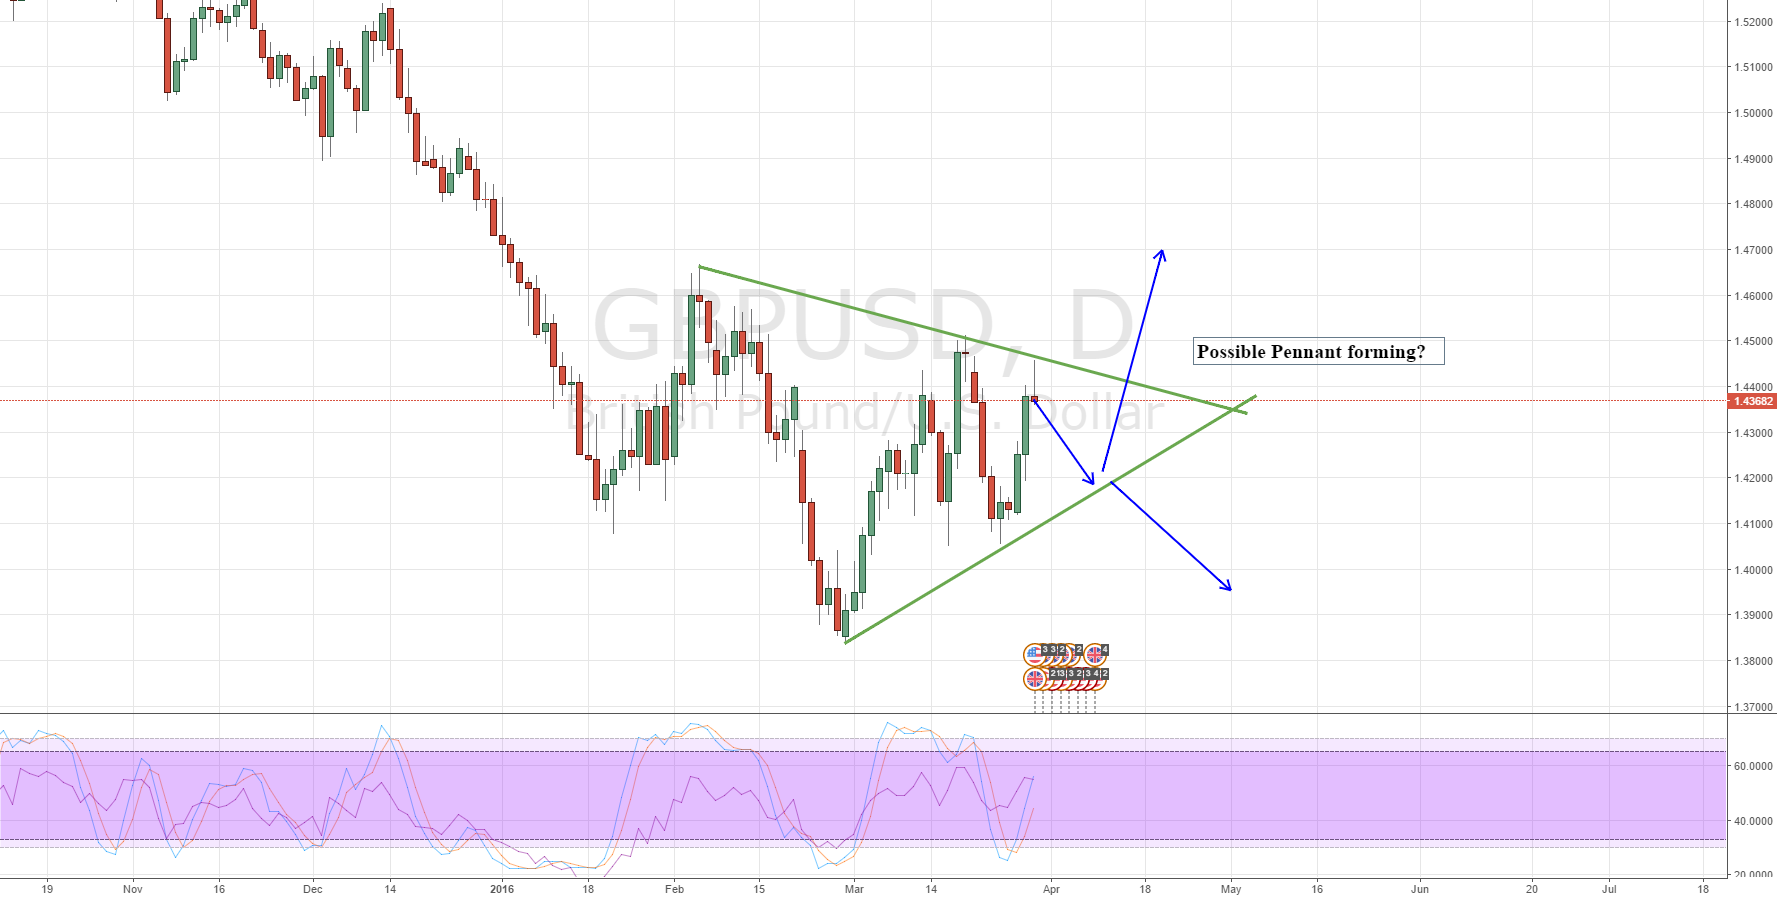 Pennant forming on GBPUSD